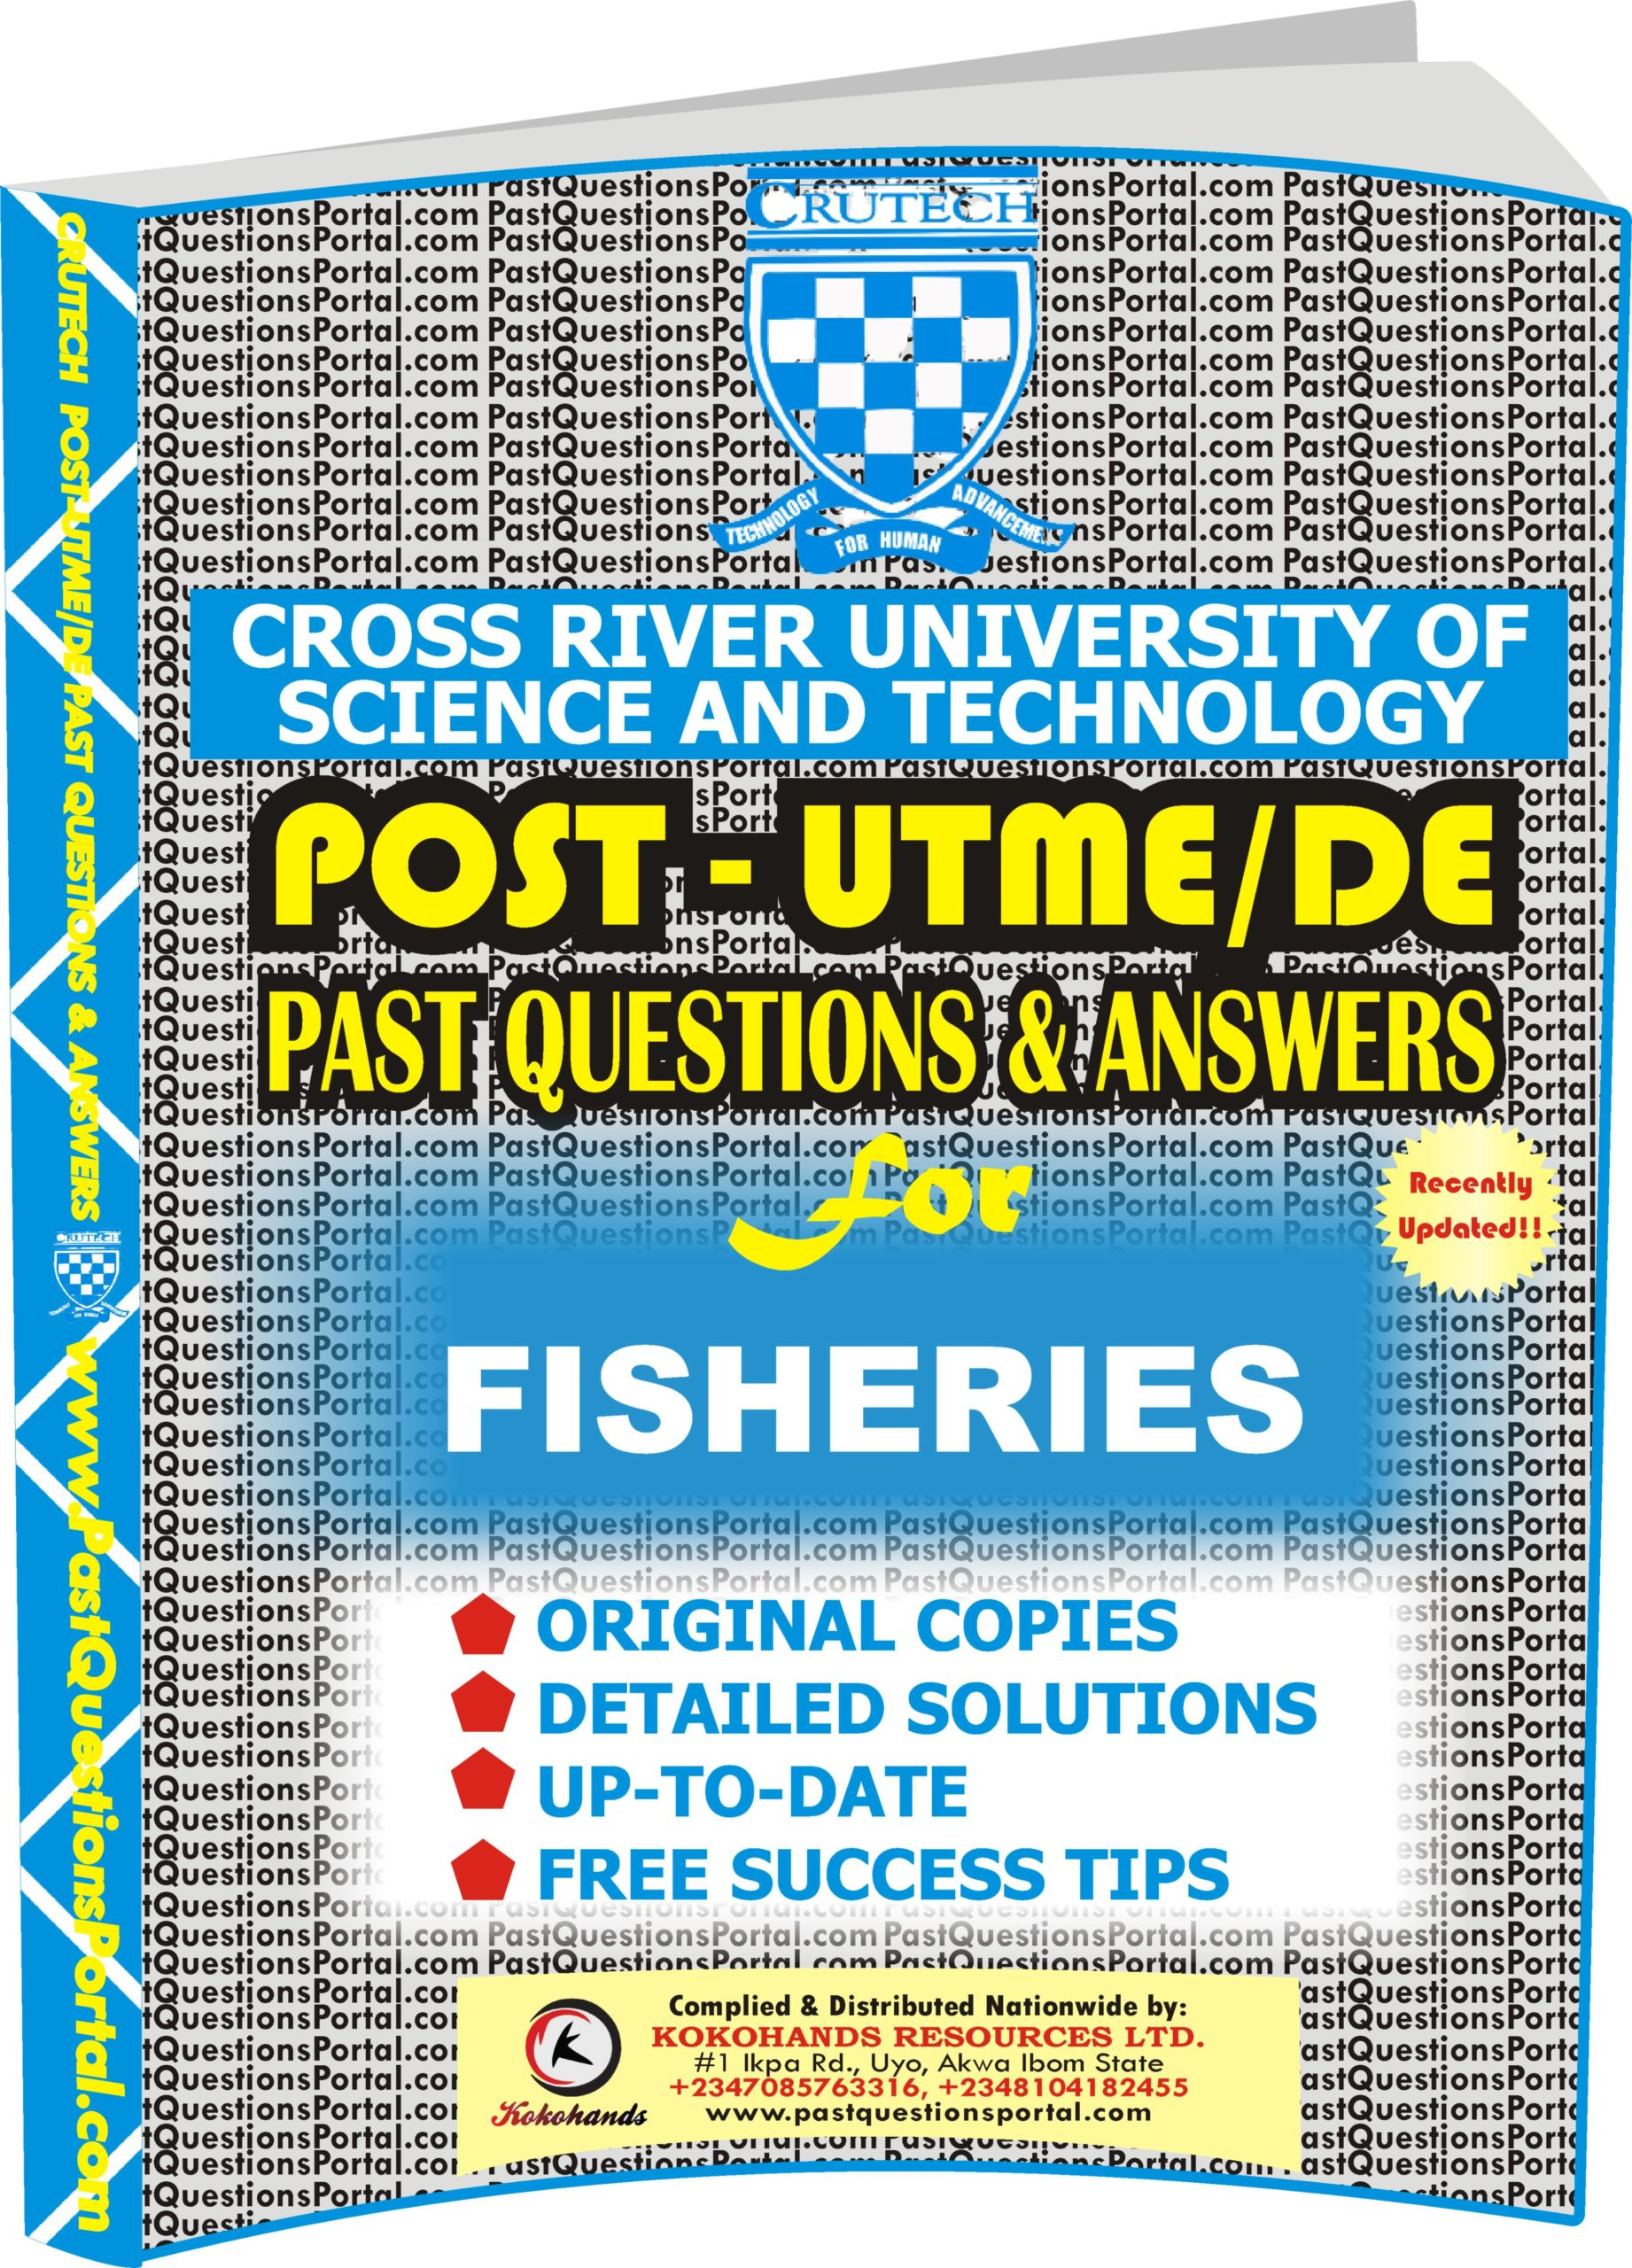 CRUTECH Post UTME Past Questions for FISHERIES